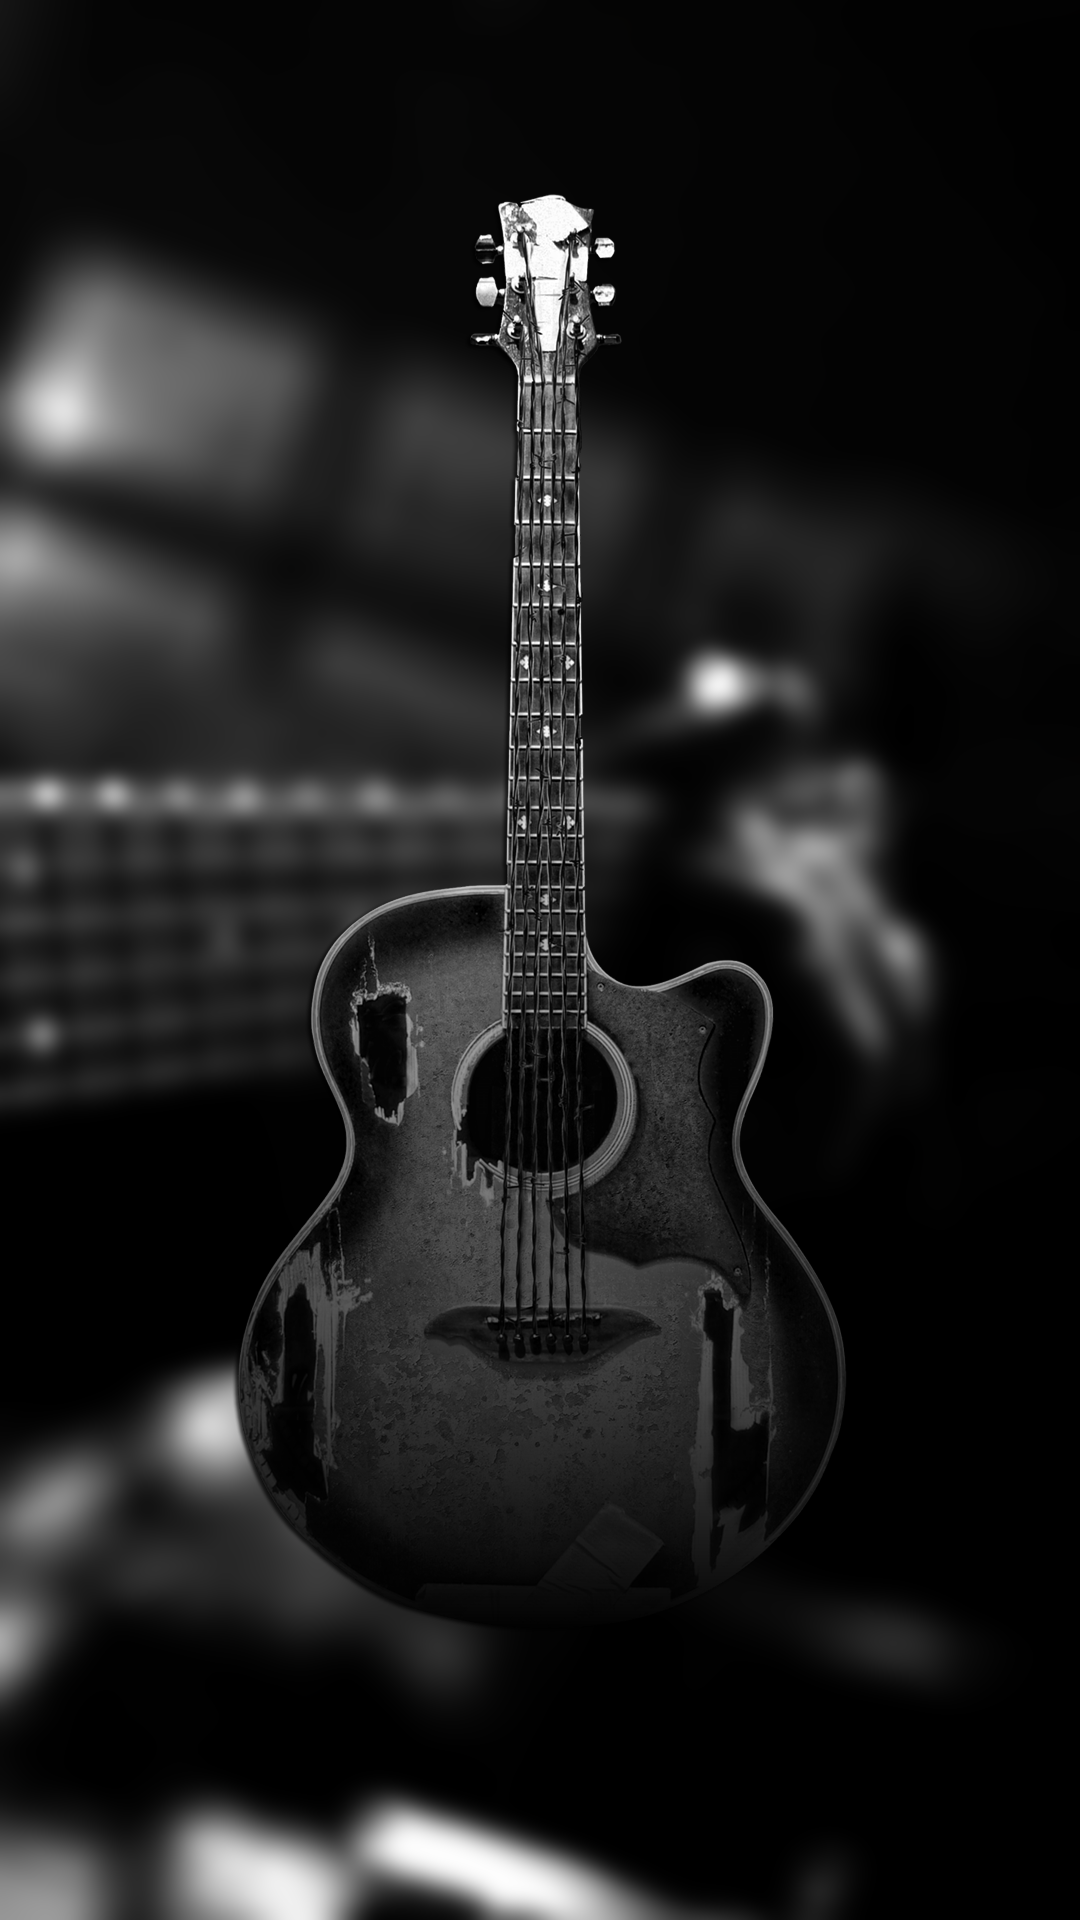 Ultra HD Black Guitar Wallpaper For Your Mobile Phone ...0035